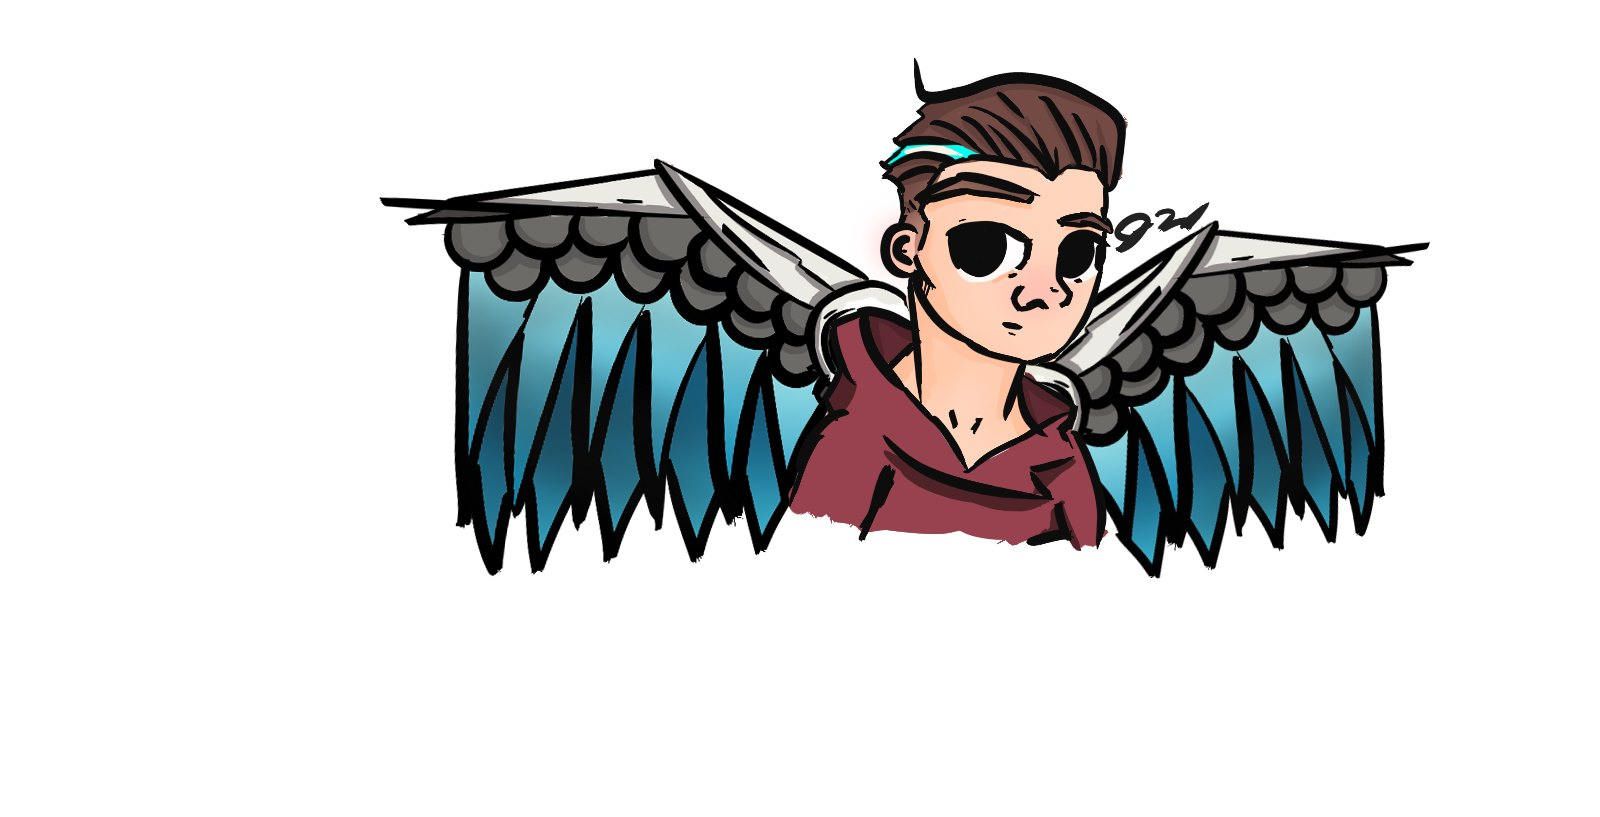 The Boy And The Wings